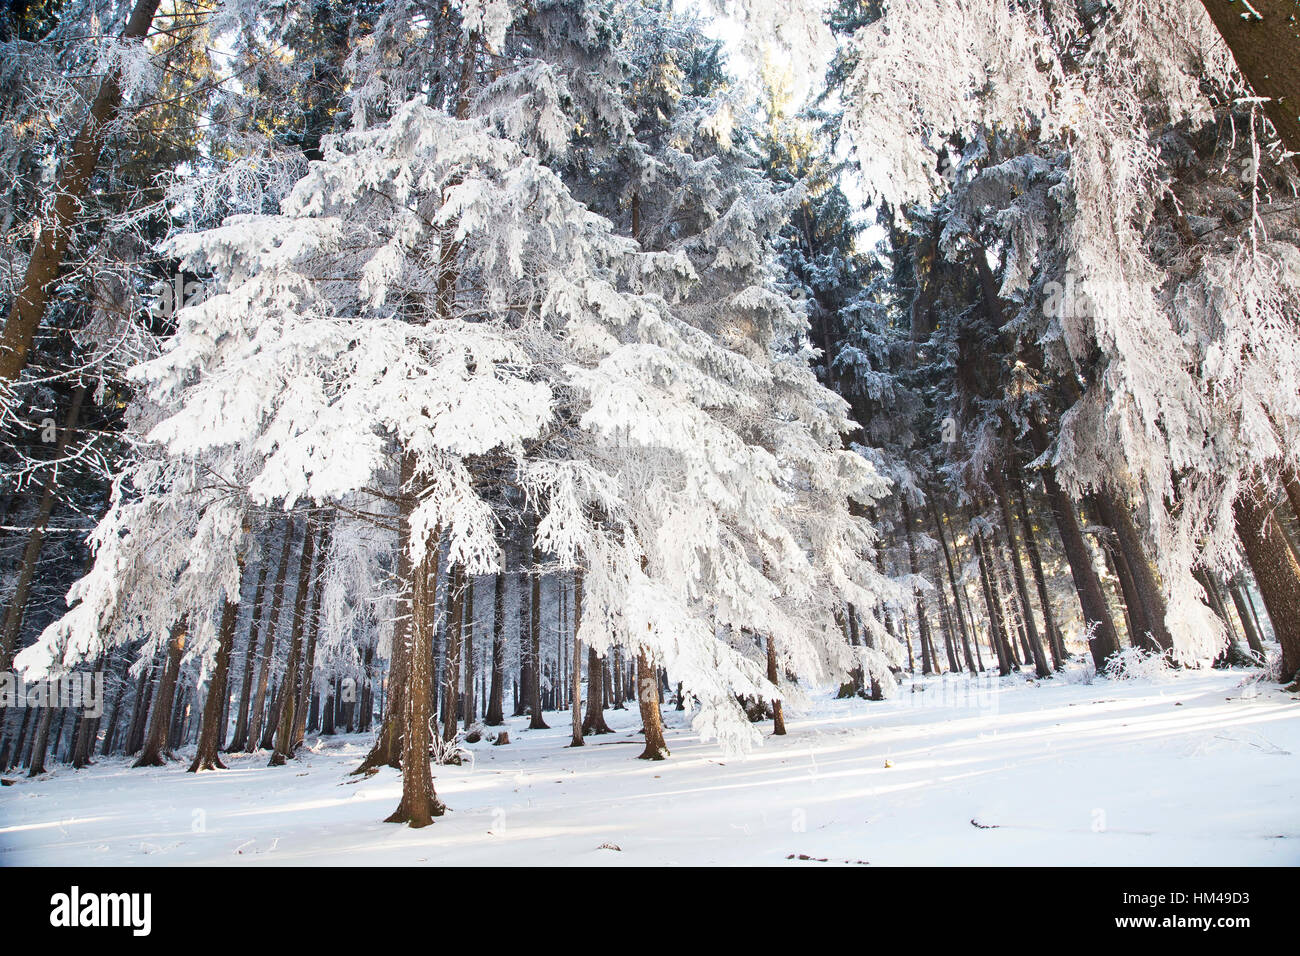 Winter forest scene with snow covered trees, nature winter scene landscape Stock Photo